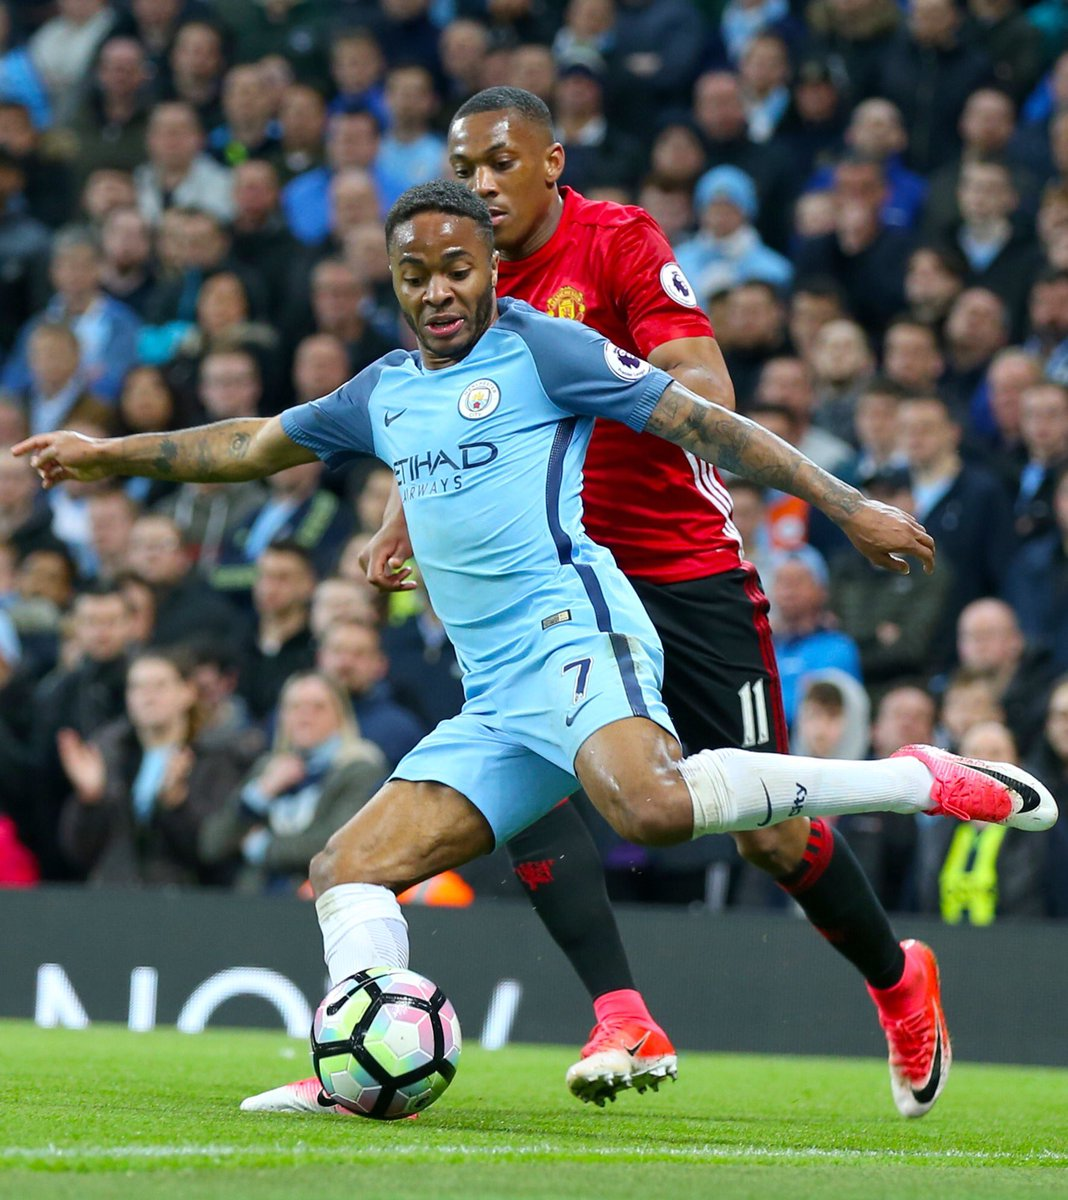 Not the result we were looking for last night but the fans were unreal as always! Bring on Sunday! #MCFC